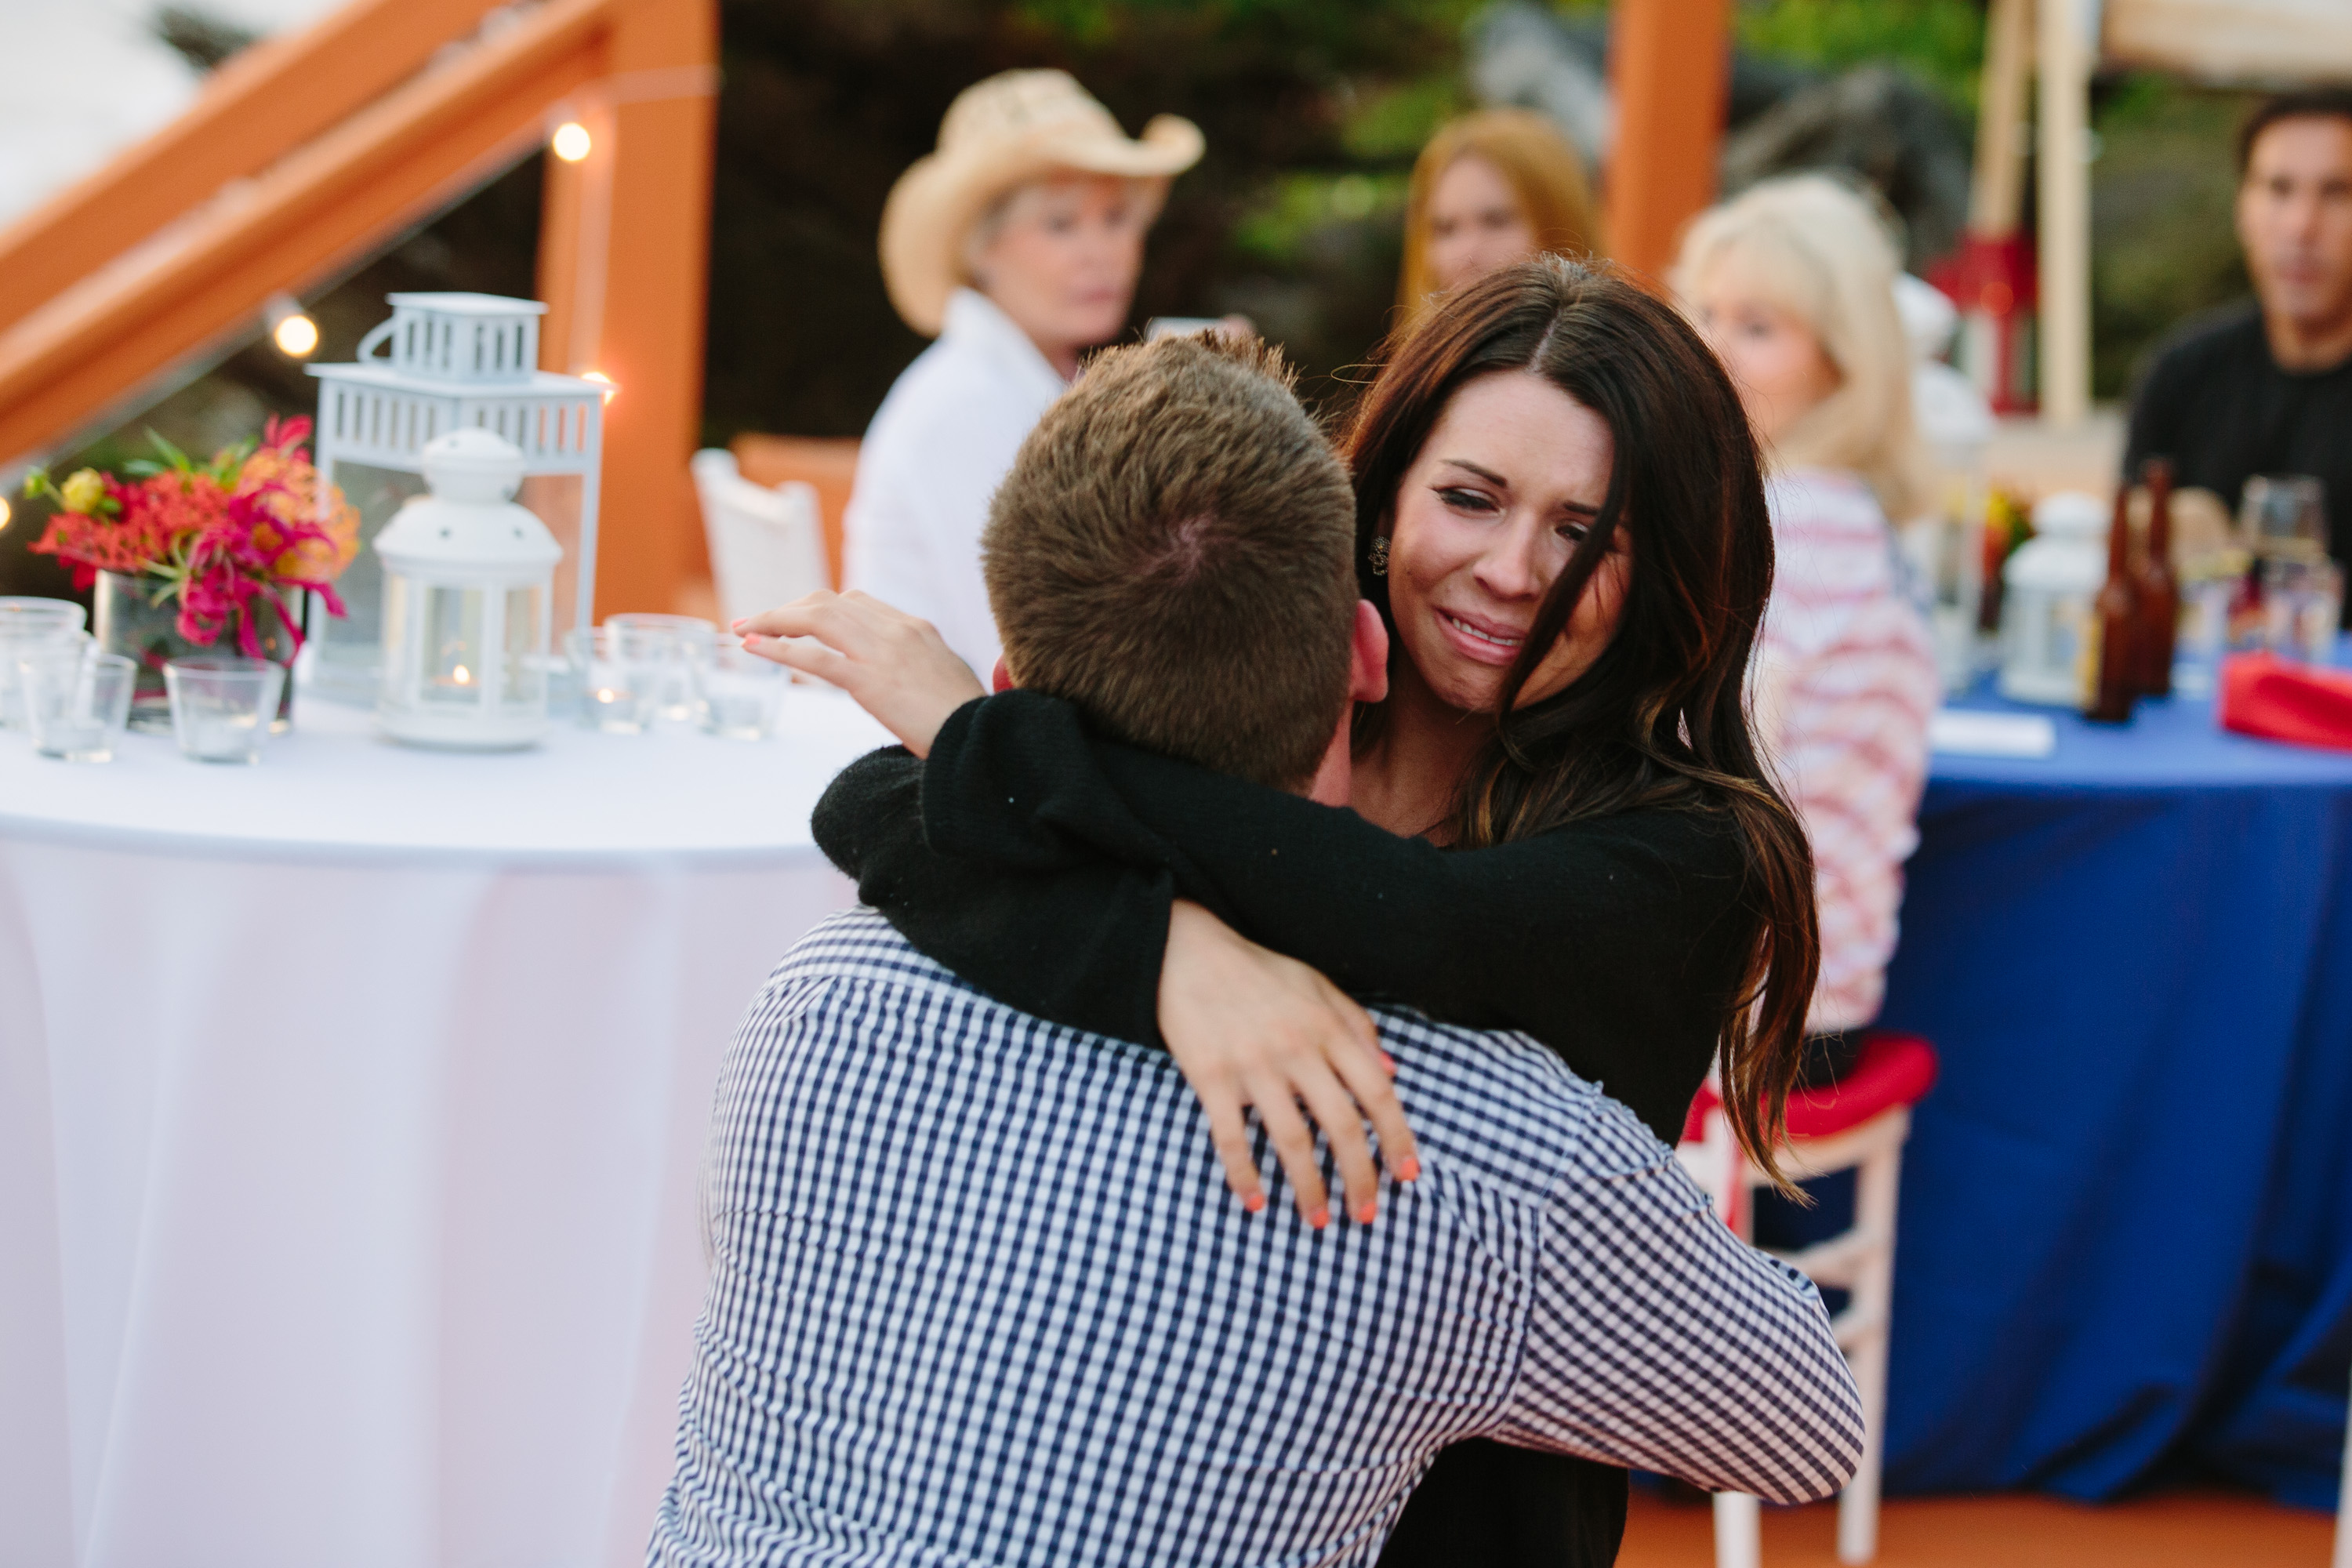 Surprise Marriage Proposal on Fourth of July017